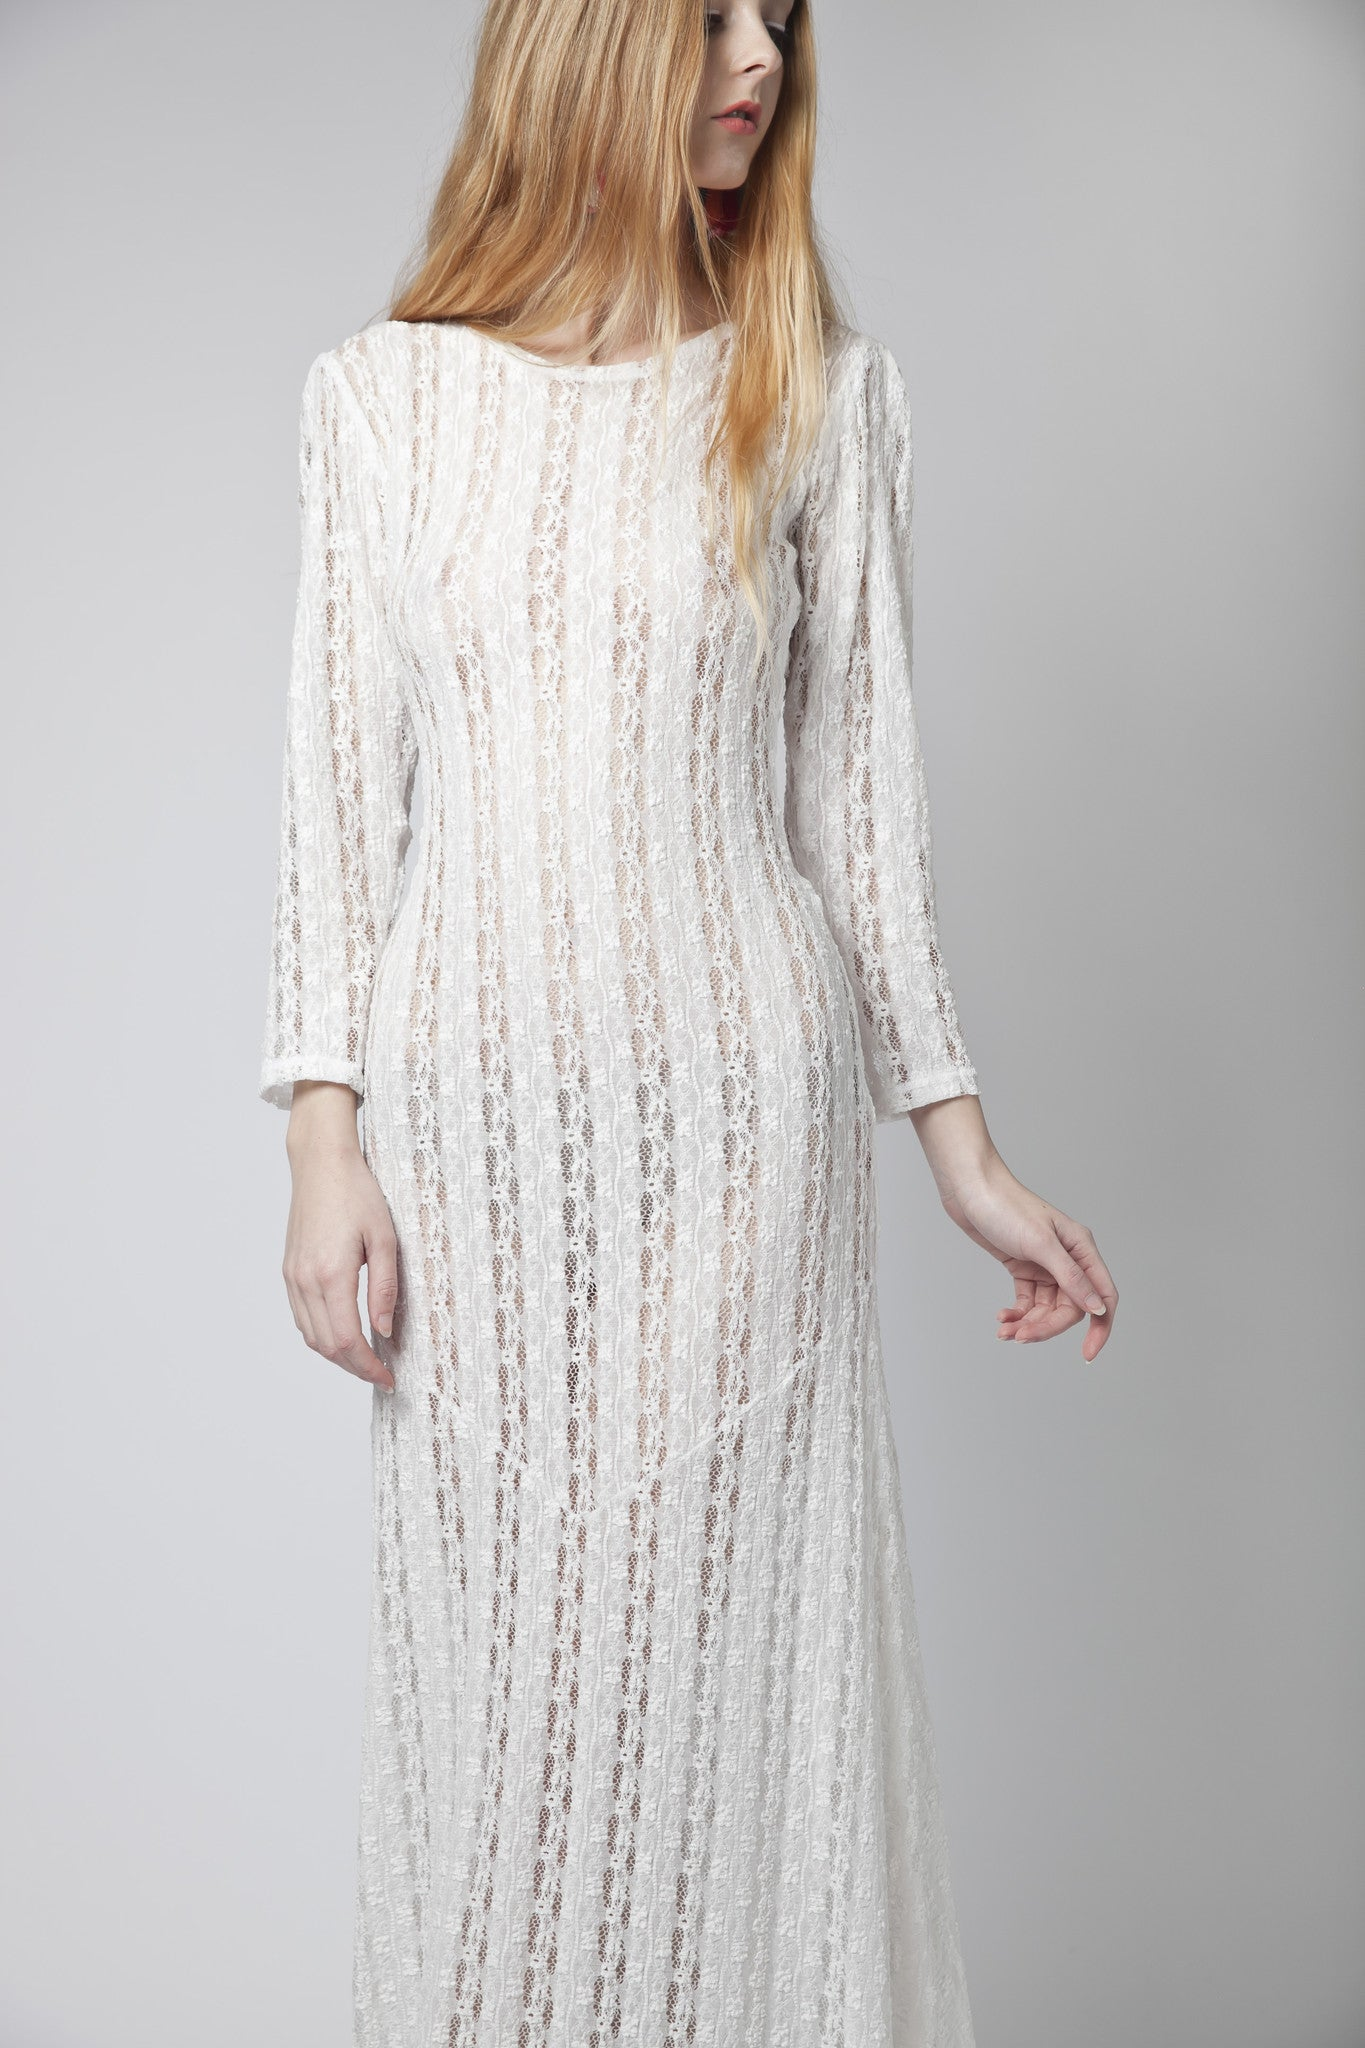 Alethea Sheer Dress